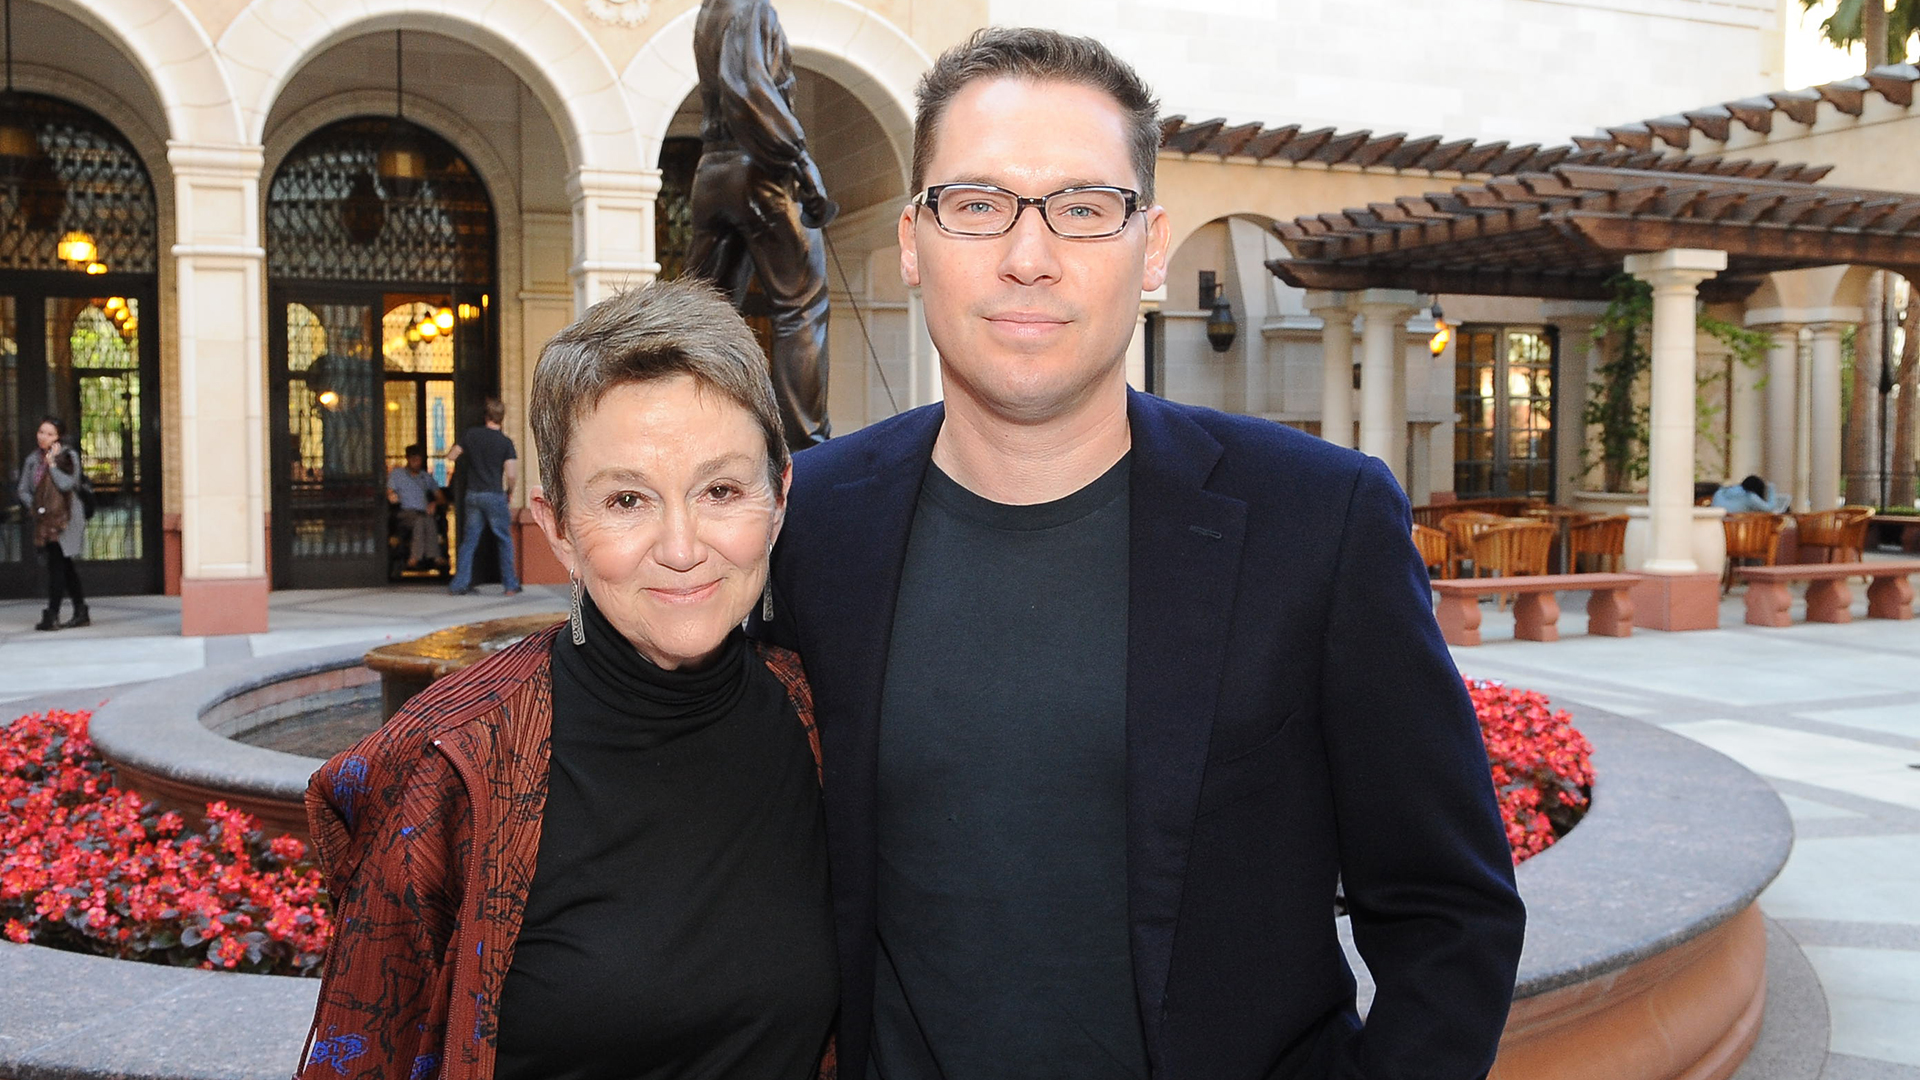 'X-Men' director Bryan Singer accused of sexually abusing 17-year-old boy in 1999